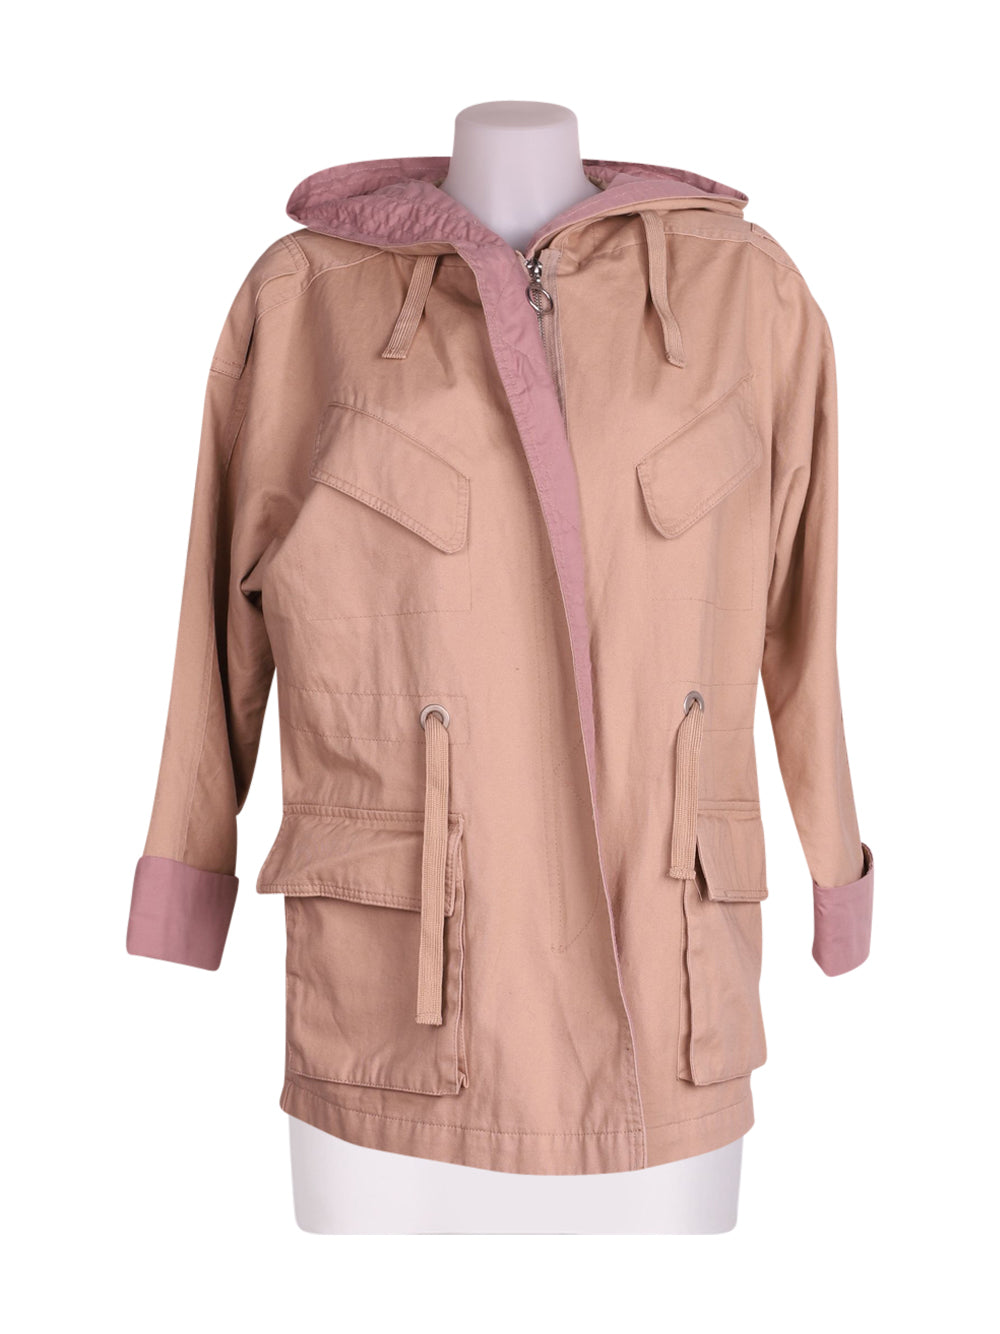 Front photo of Preloved Asos Beige Woman's jacket - size 4/XXS